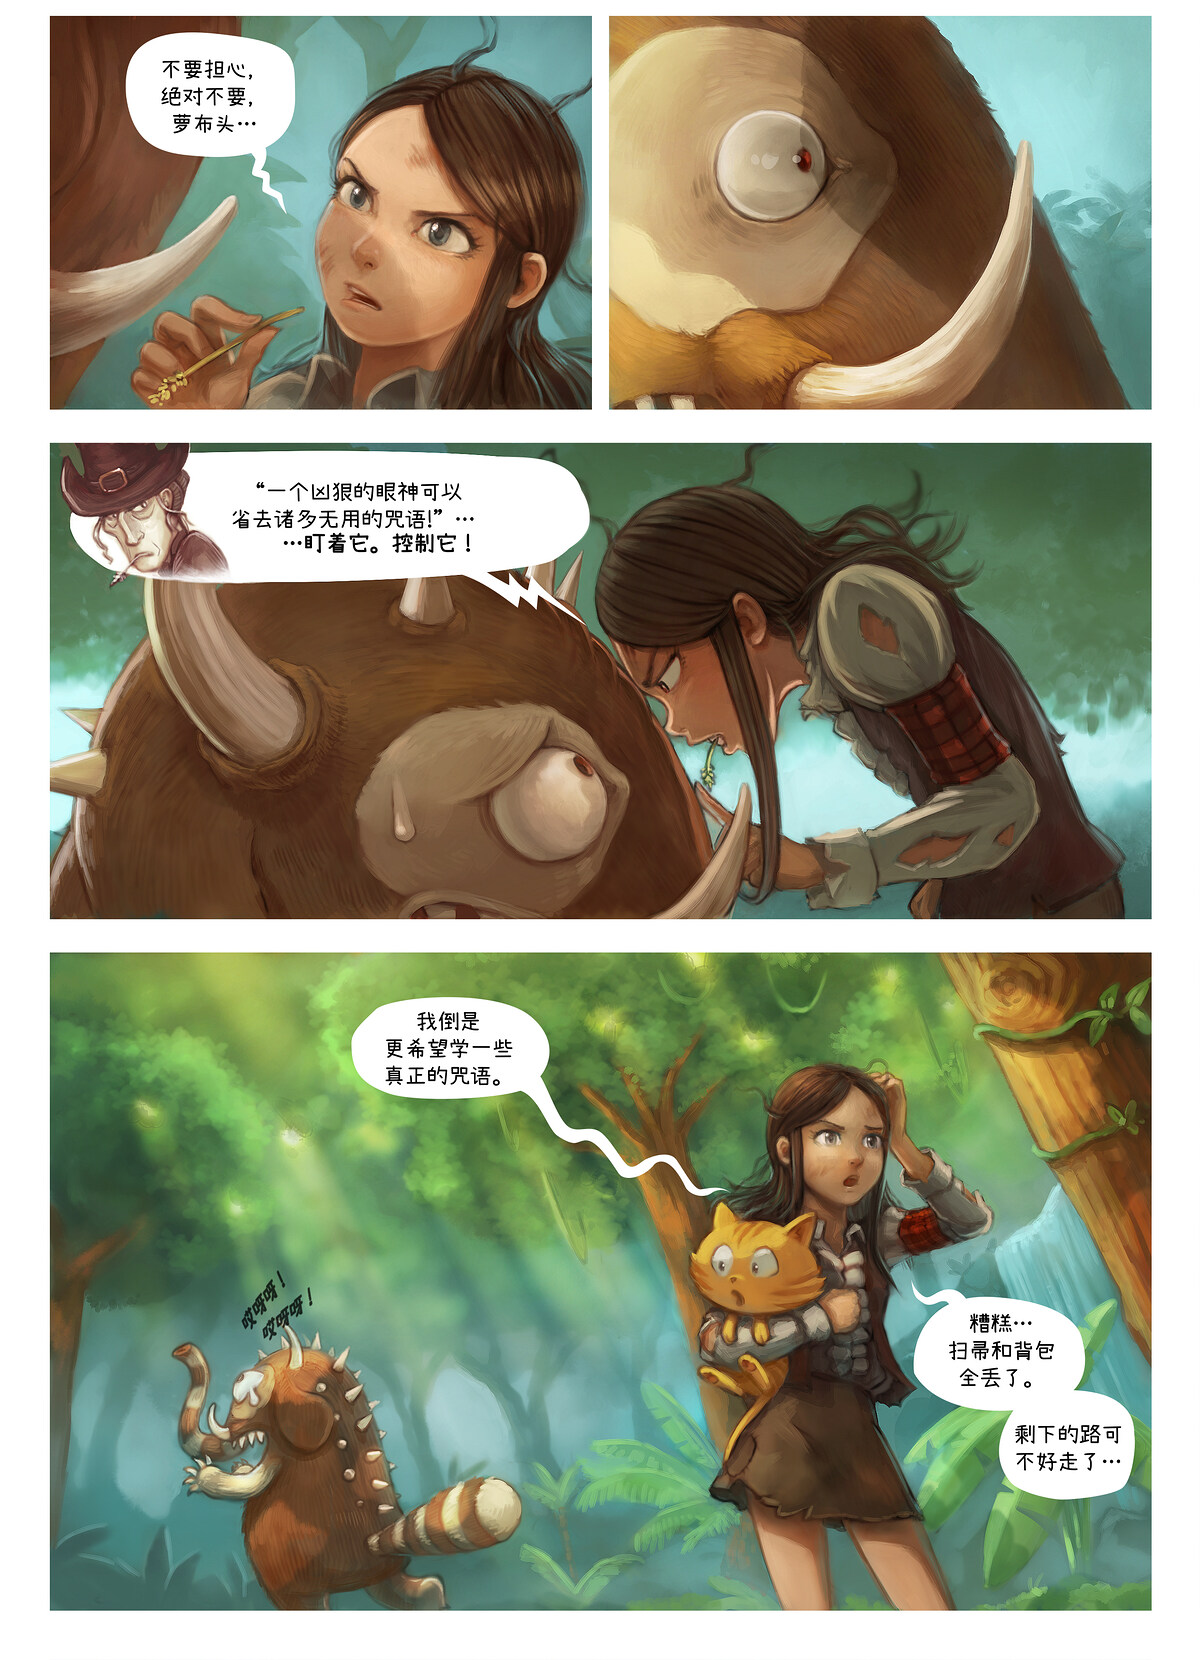 A webcomic page of Pepper&Carrot, 漫画全集 17 [cn], 页面 4